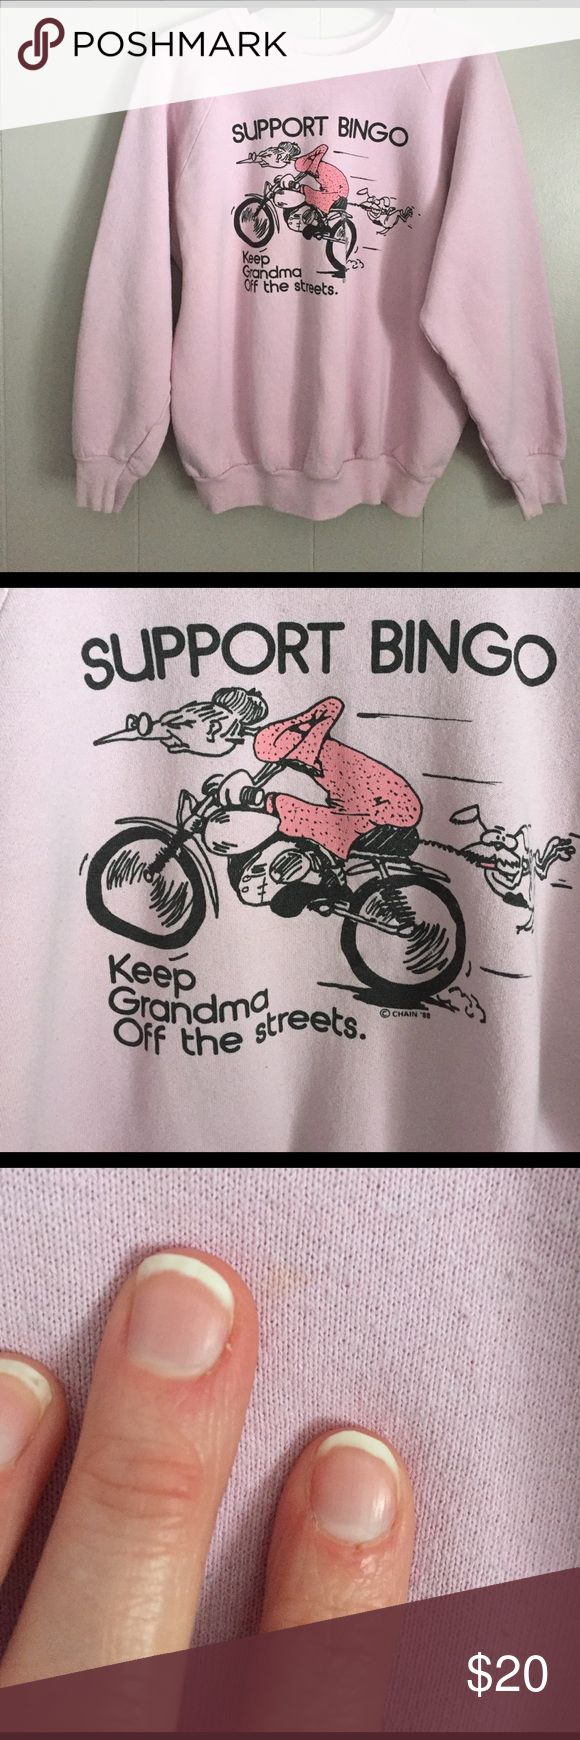 """Vintage Bingo Sweatshirt '88 """"Support Bingo-- Keep Grandma Off the streets ©CHAIN'88"""". Purplish pink crewneck sweatshirt. In good, vintage condition. I did notice one very small spot and it is shown in the picture. This cracks me up and I love a funky and random graphic shirt. It doesn't fit anymore so I've gotta find it a new home. Made by Fruit of the Loom, 50% cotton 50% polyester. Vintage Tops Sweatshirts & Hoodies"""